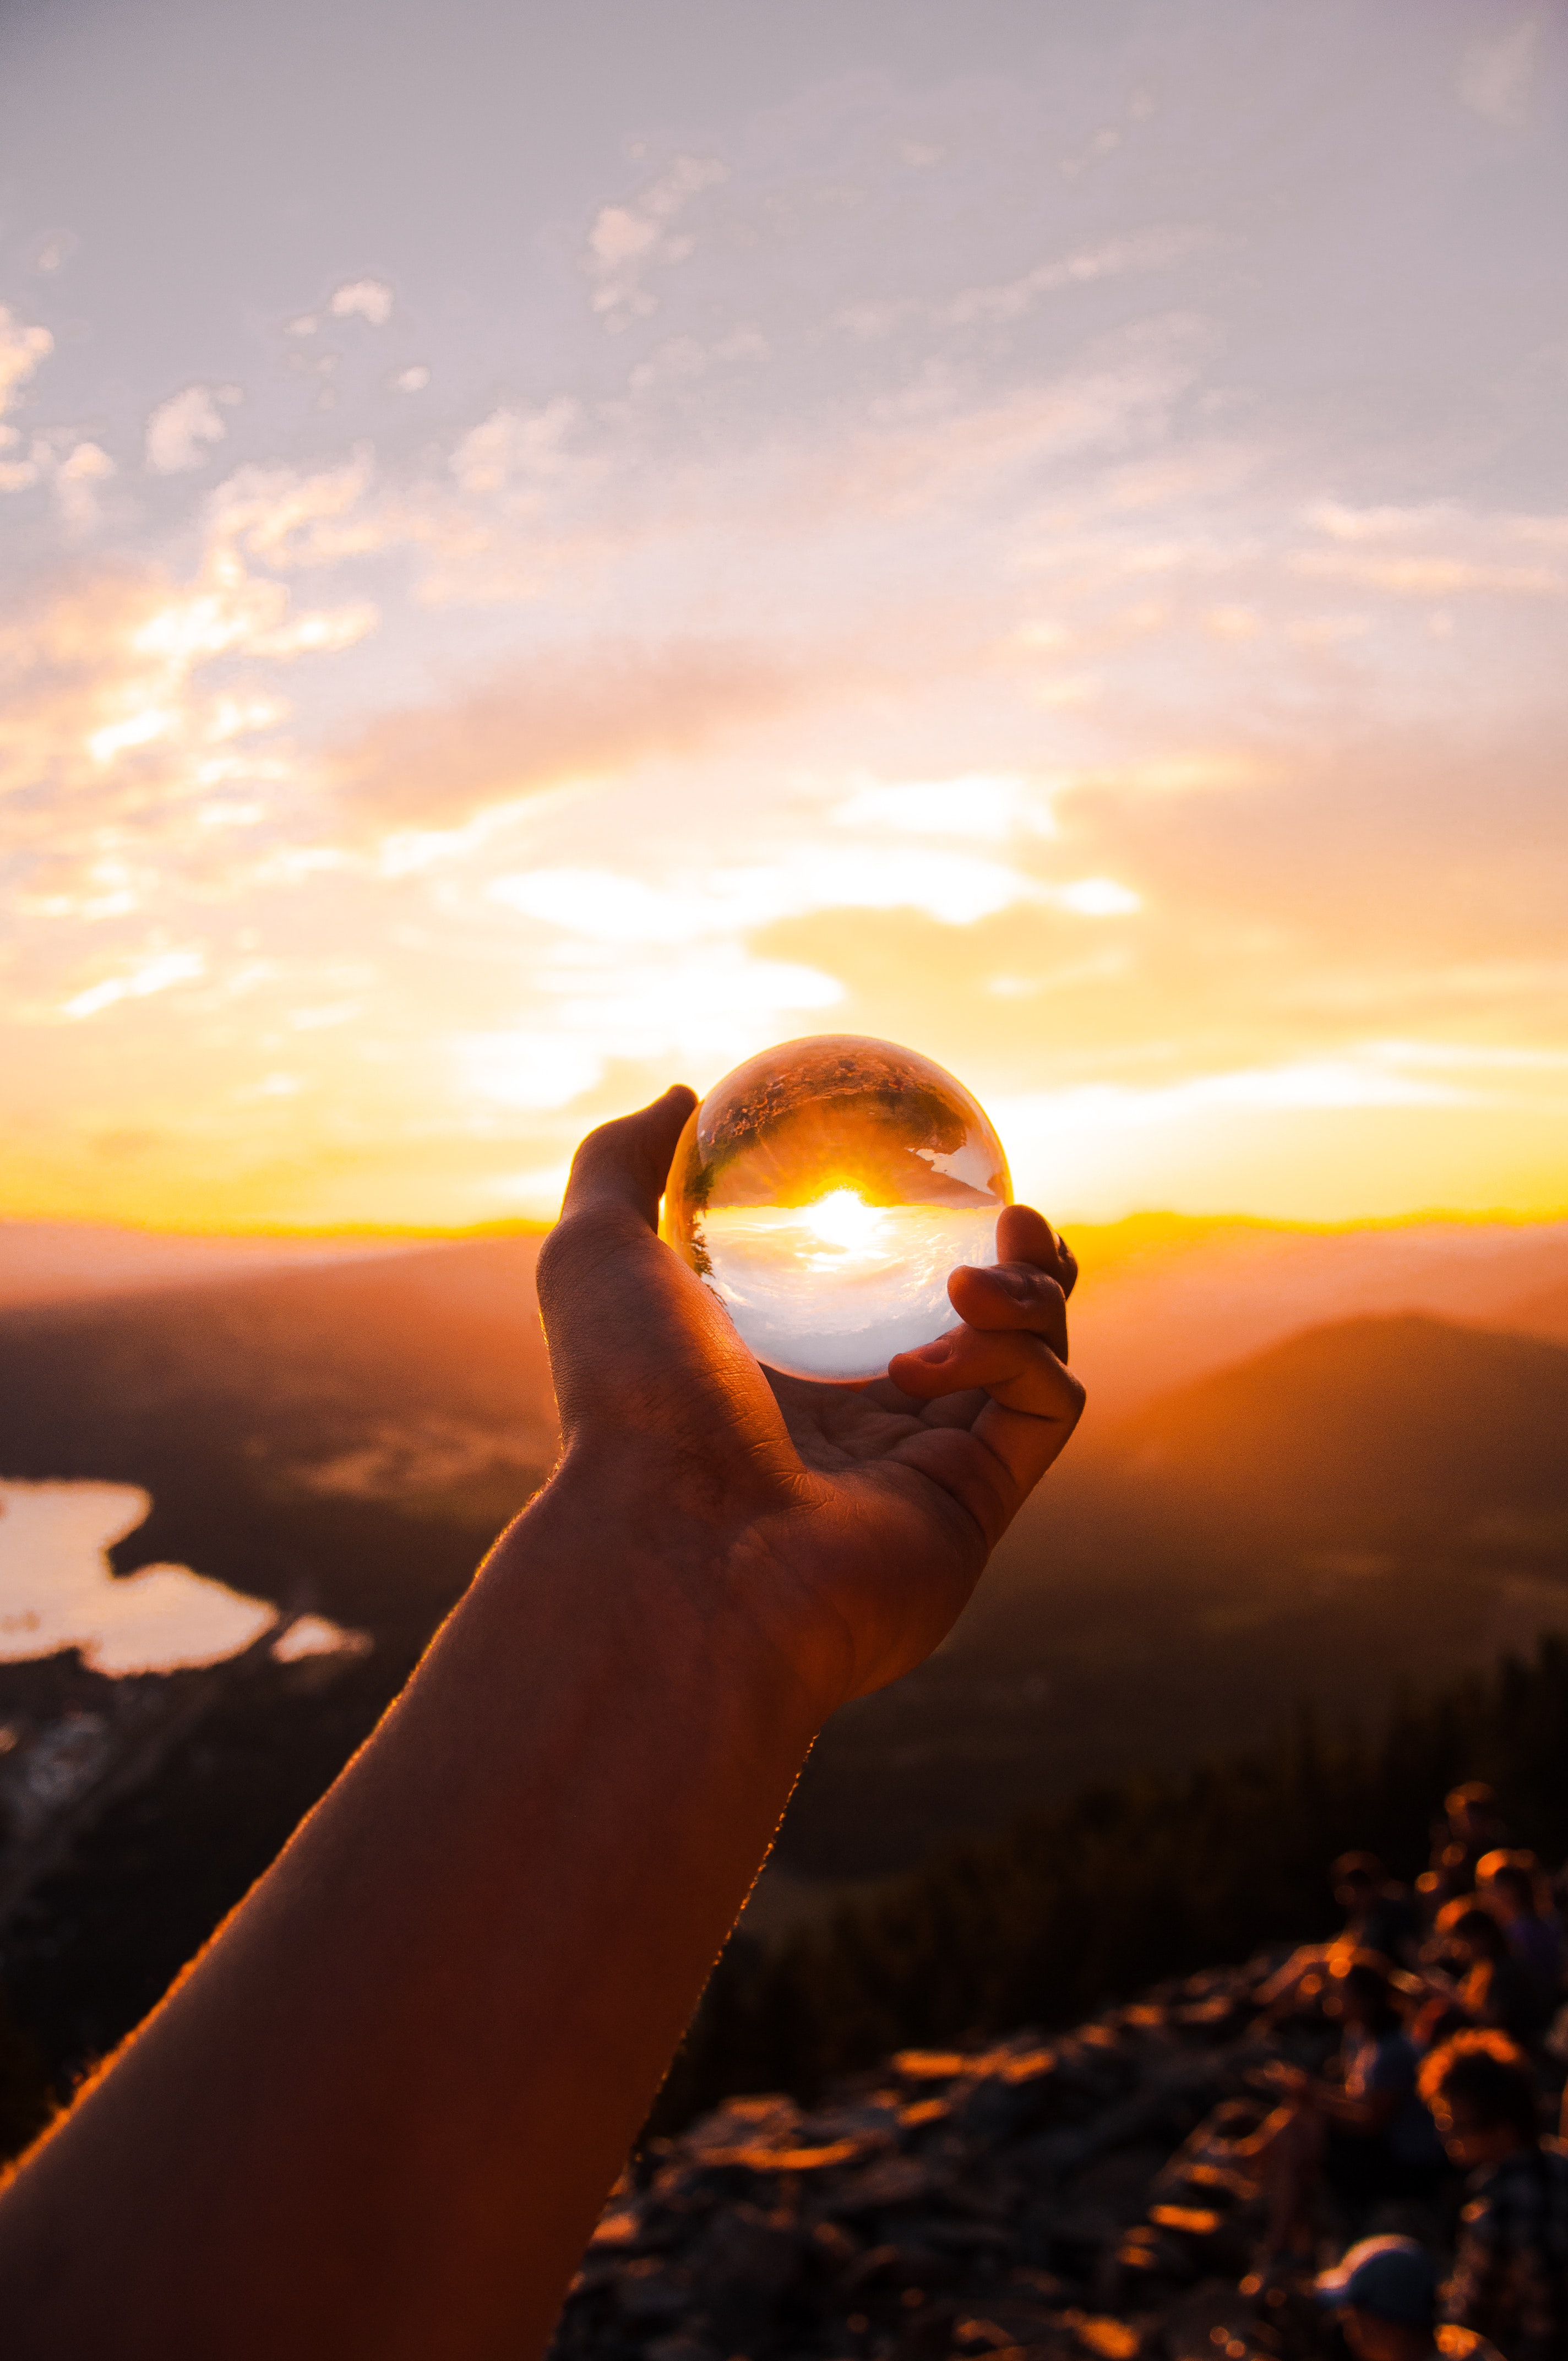 backlit-crystal-ball-dawn-1252893